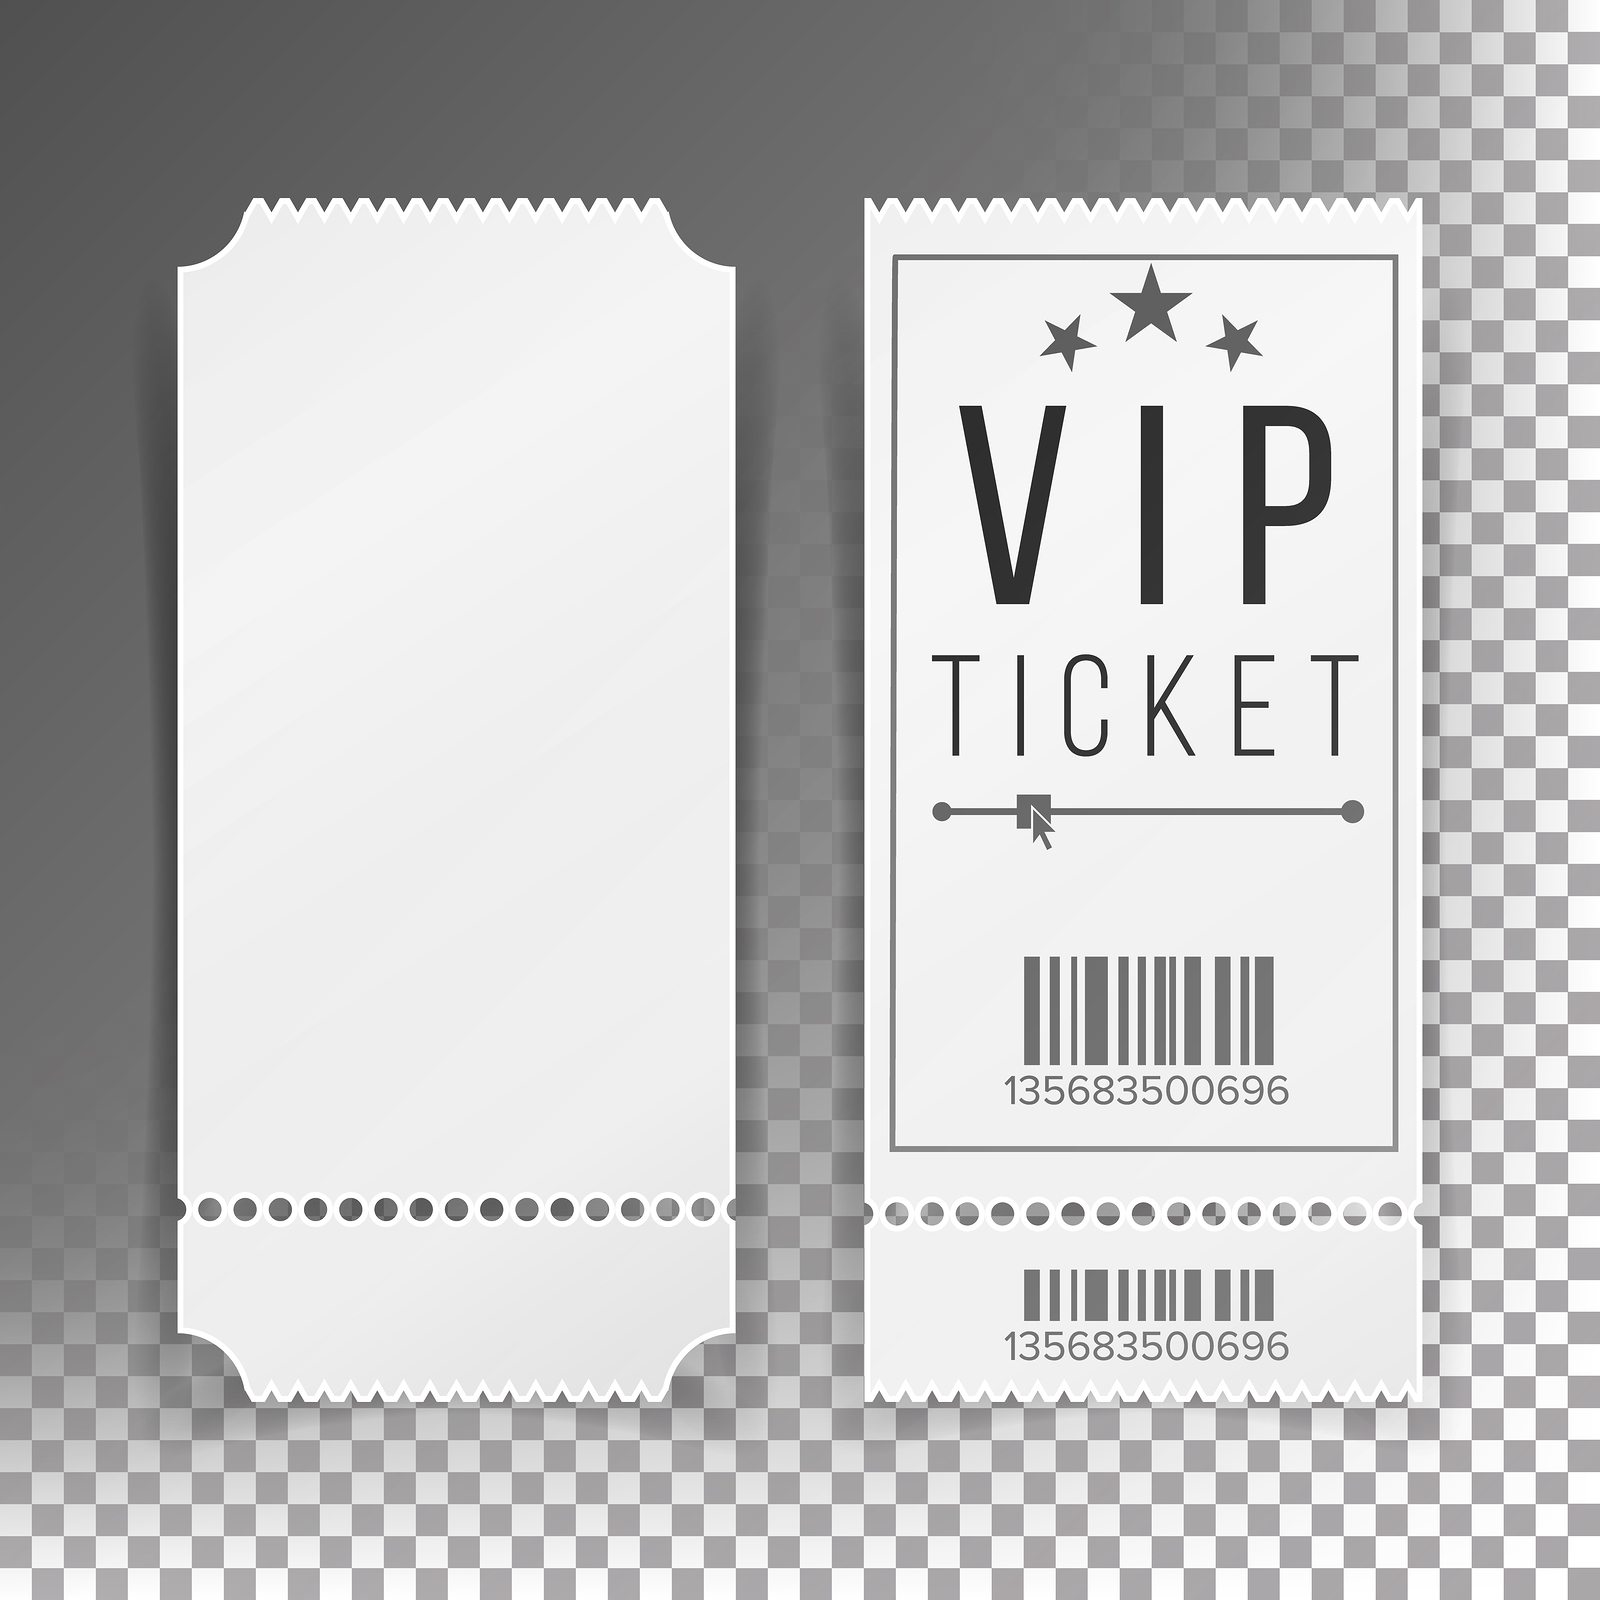 A special VIP ticket on a gray background.